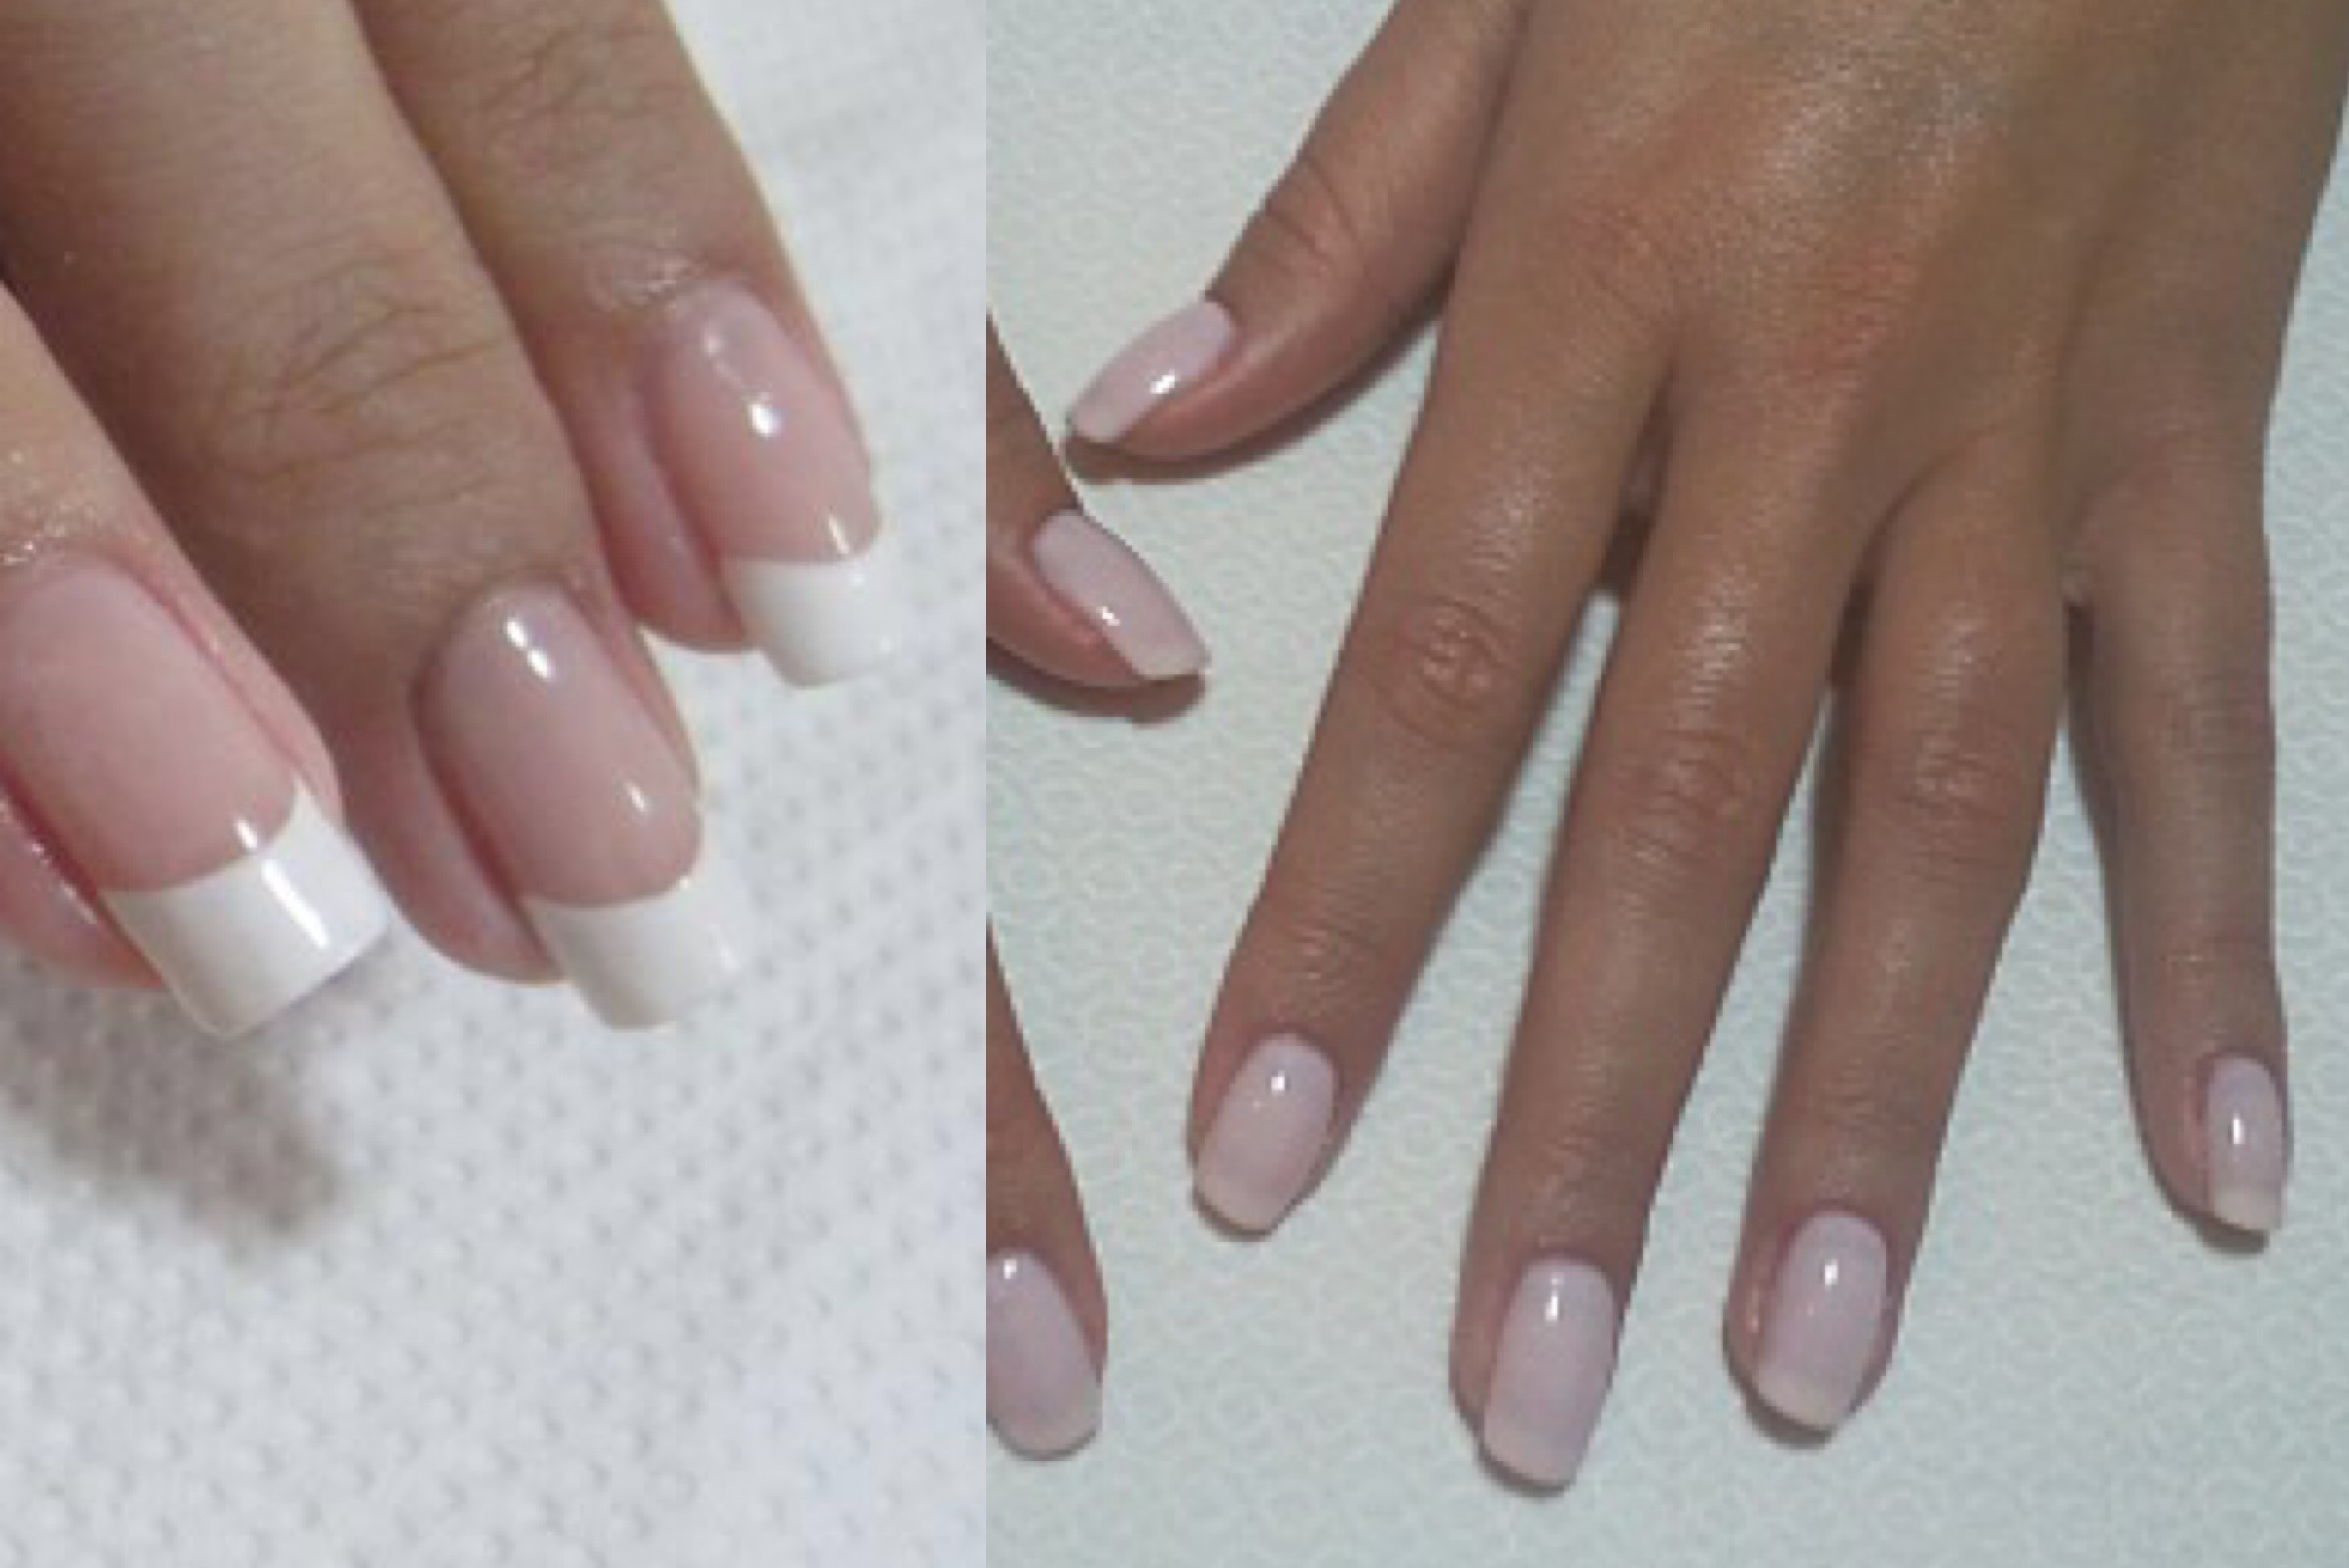 French manicure vs fake nails